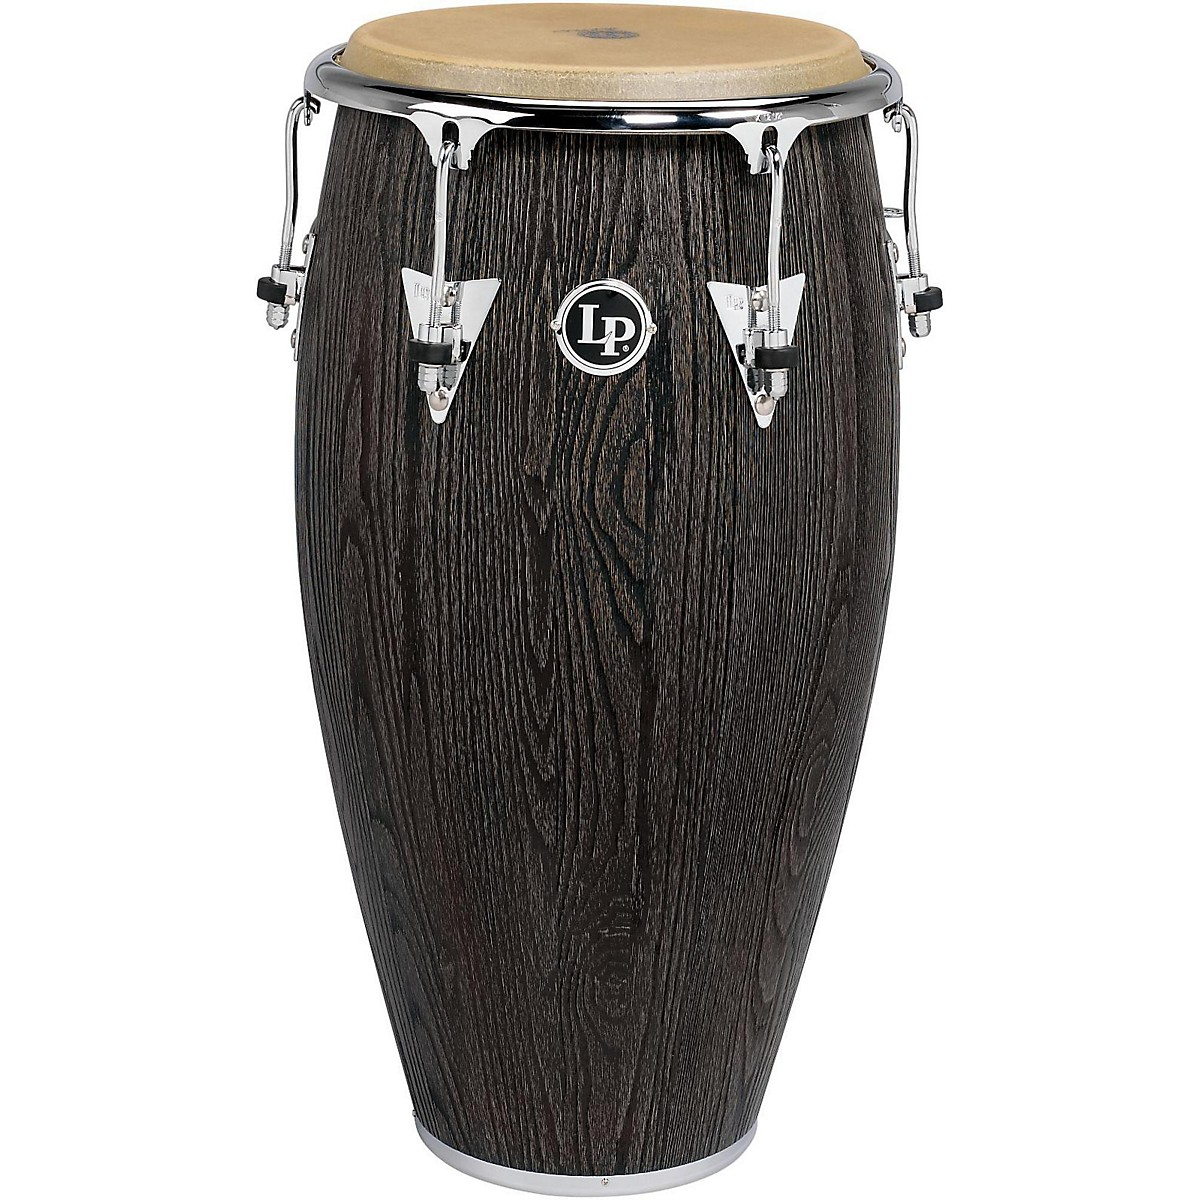 LP Uptown Series Sculpted Ash Conga Drum Chrome Hardware